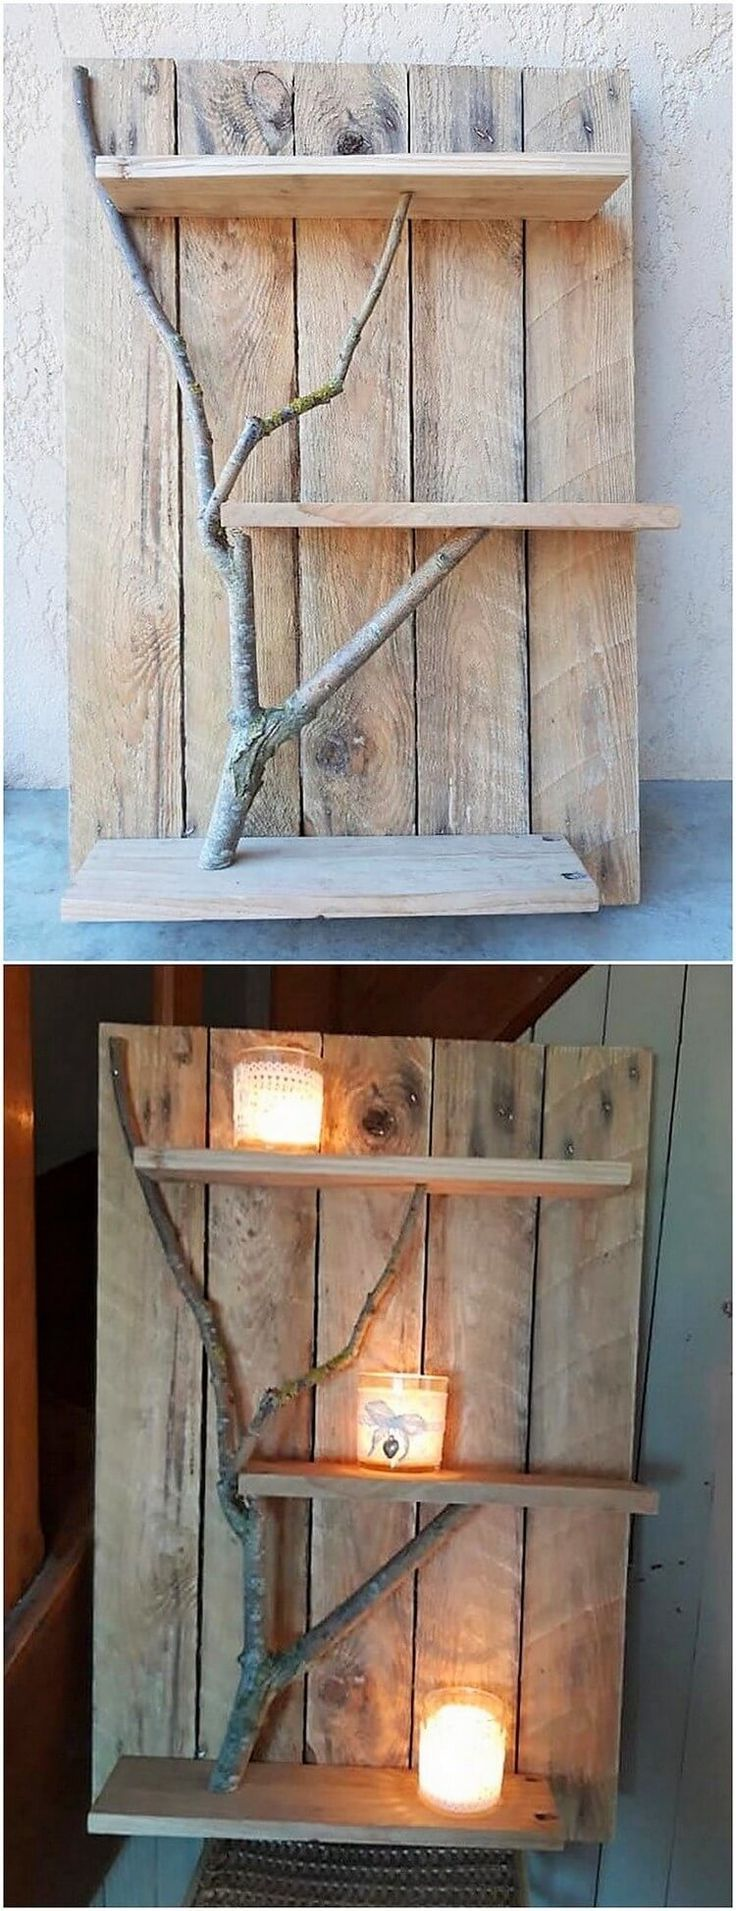 Less Expensive Wood Shipping Pallet DIY Projects